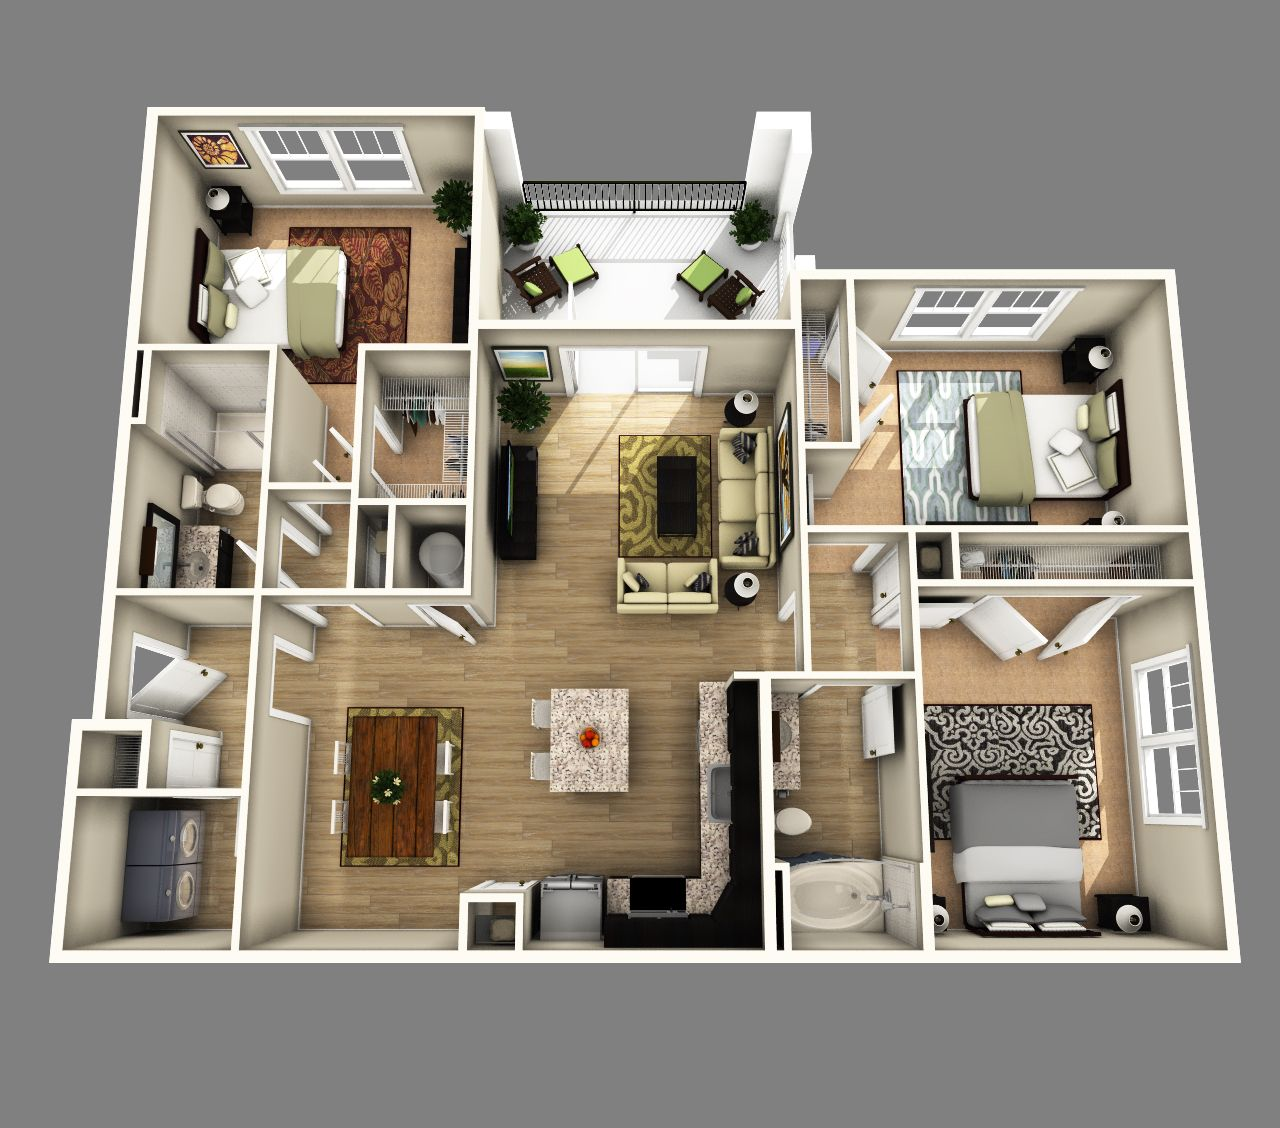 3d open floor plan 3 bedroom 2 bathroom google search 3d apartment layout